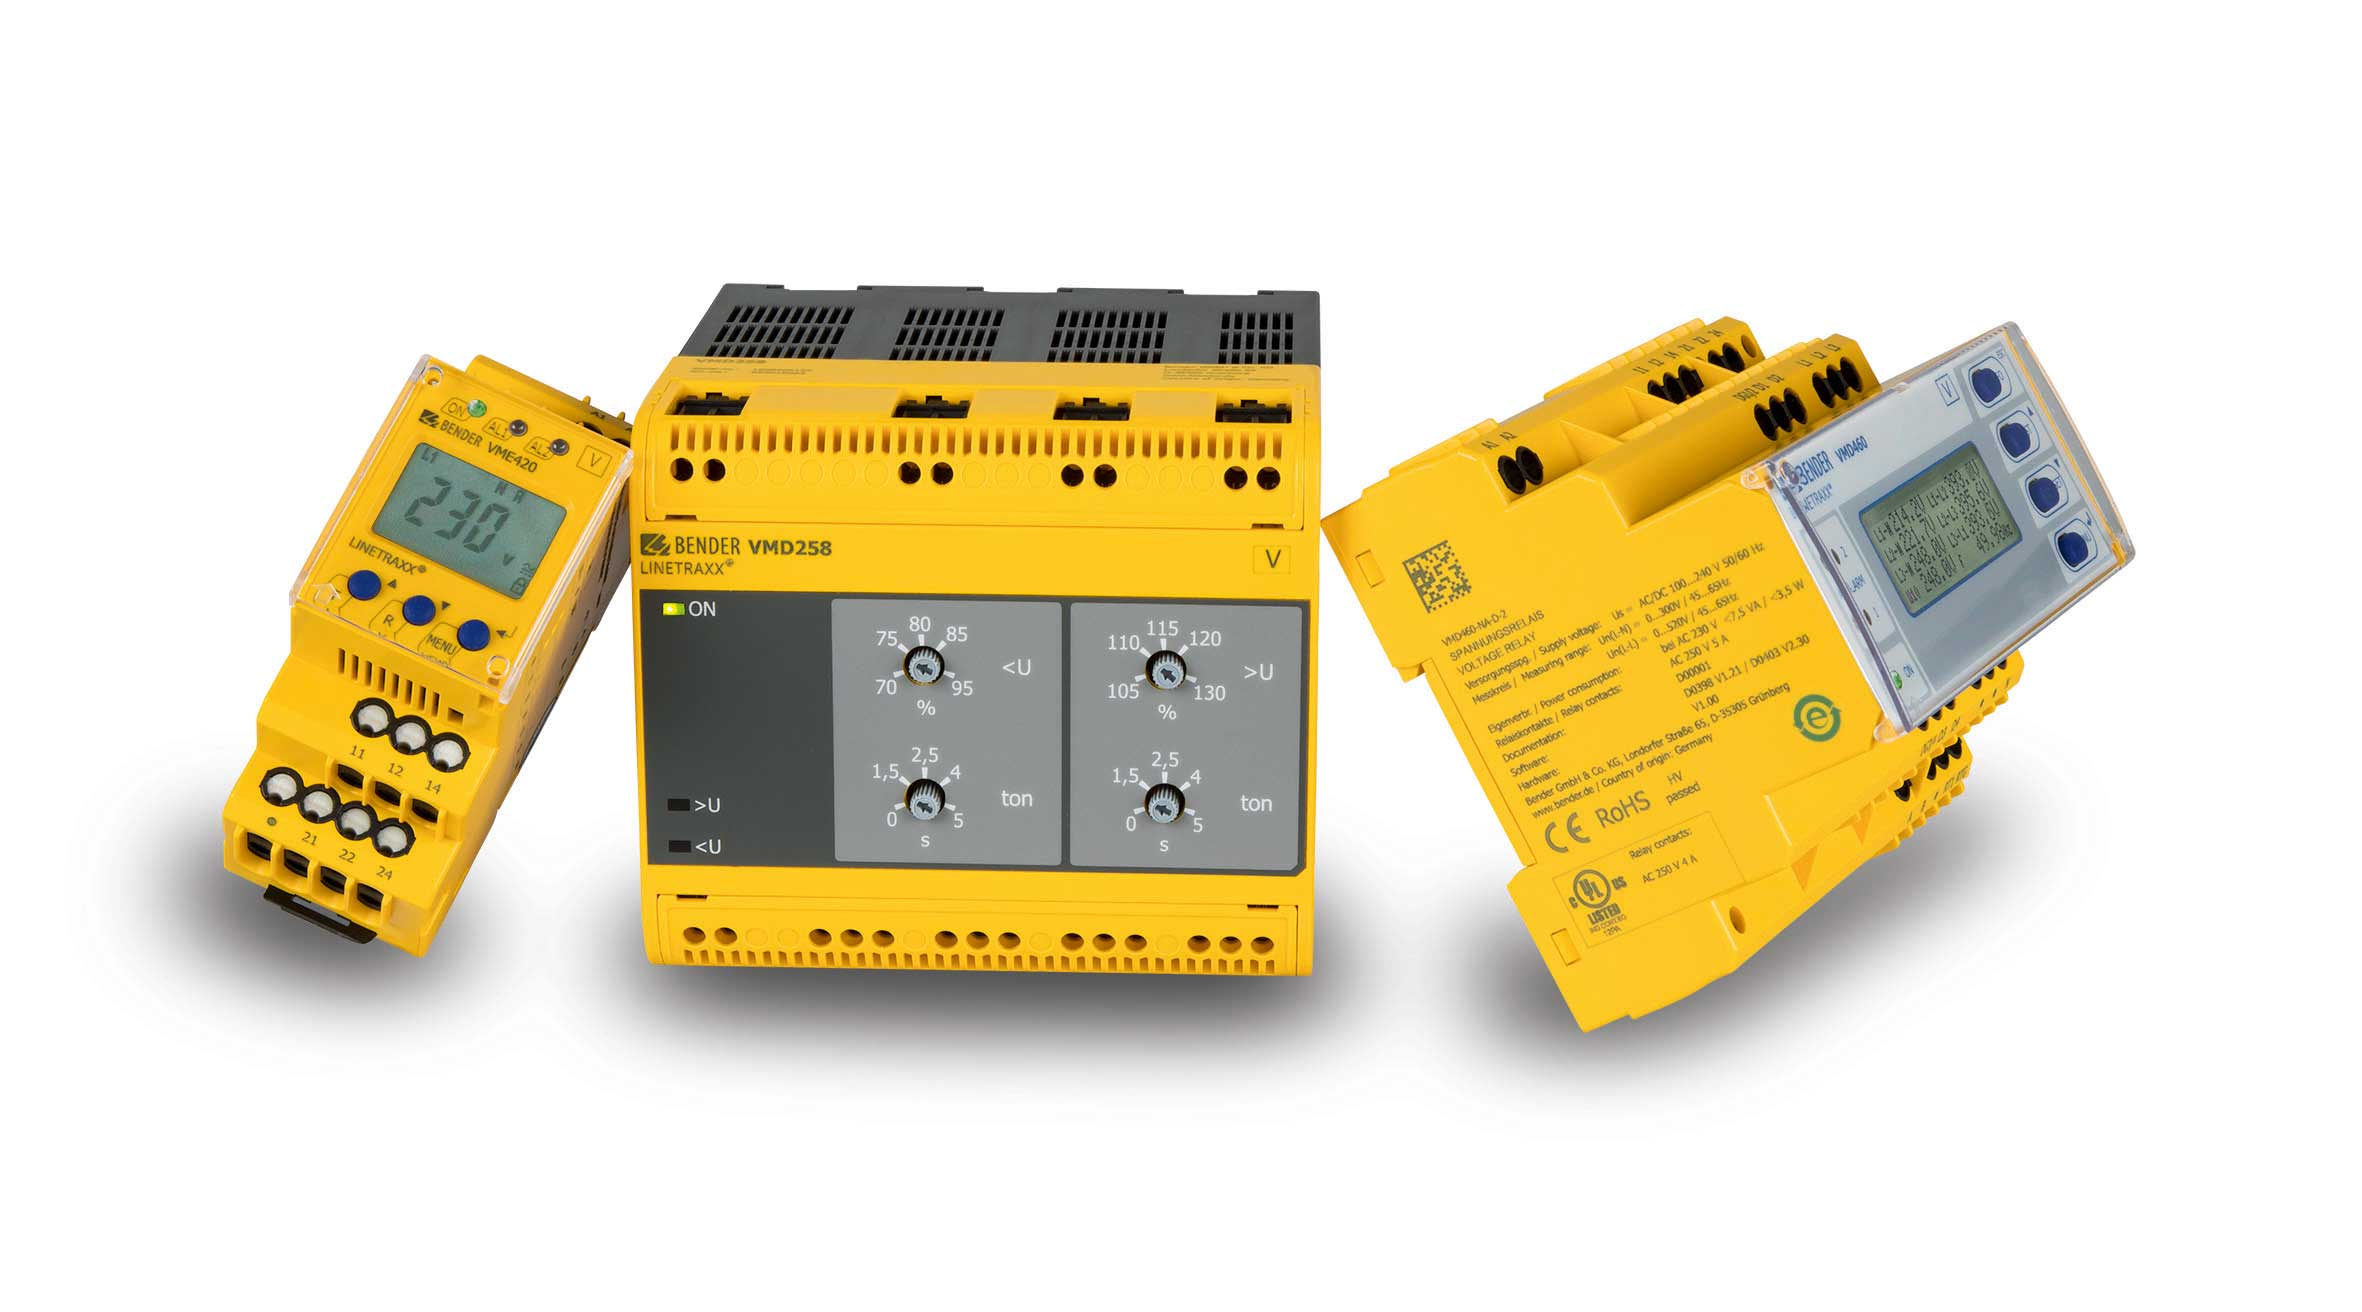 Measuring and monitoring relays: current, voltage, frequency